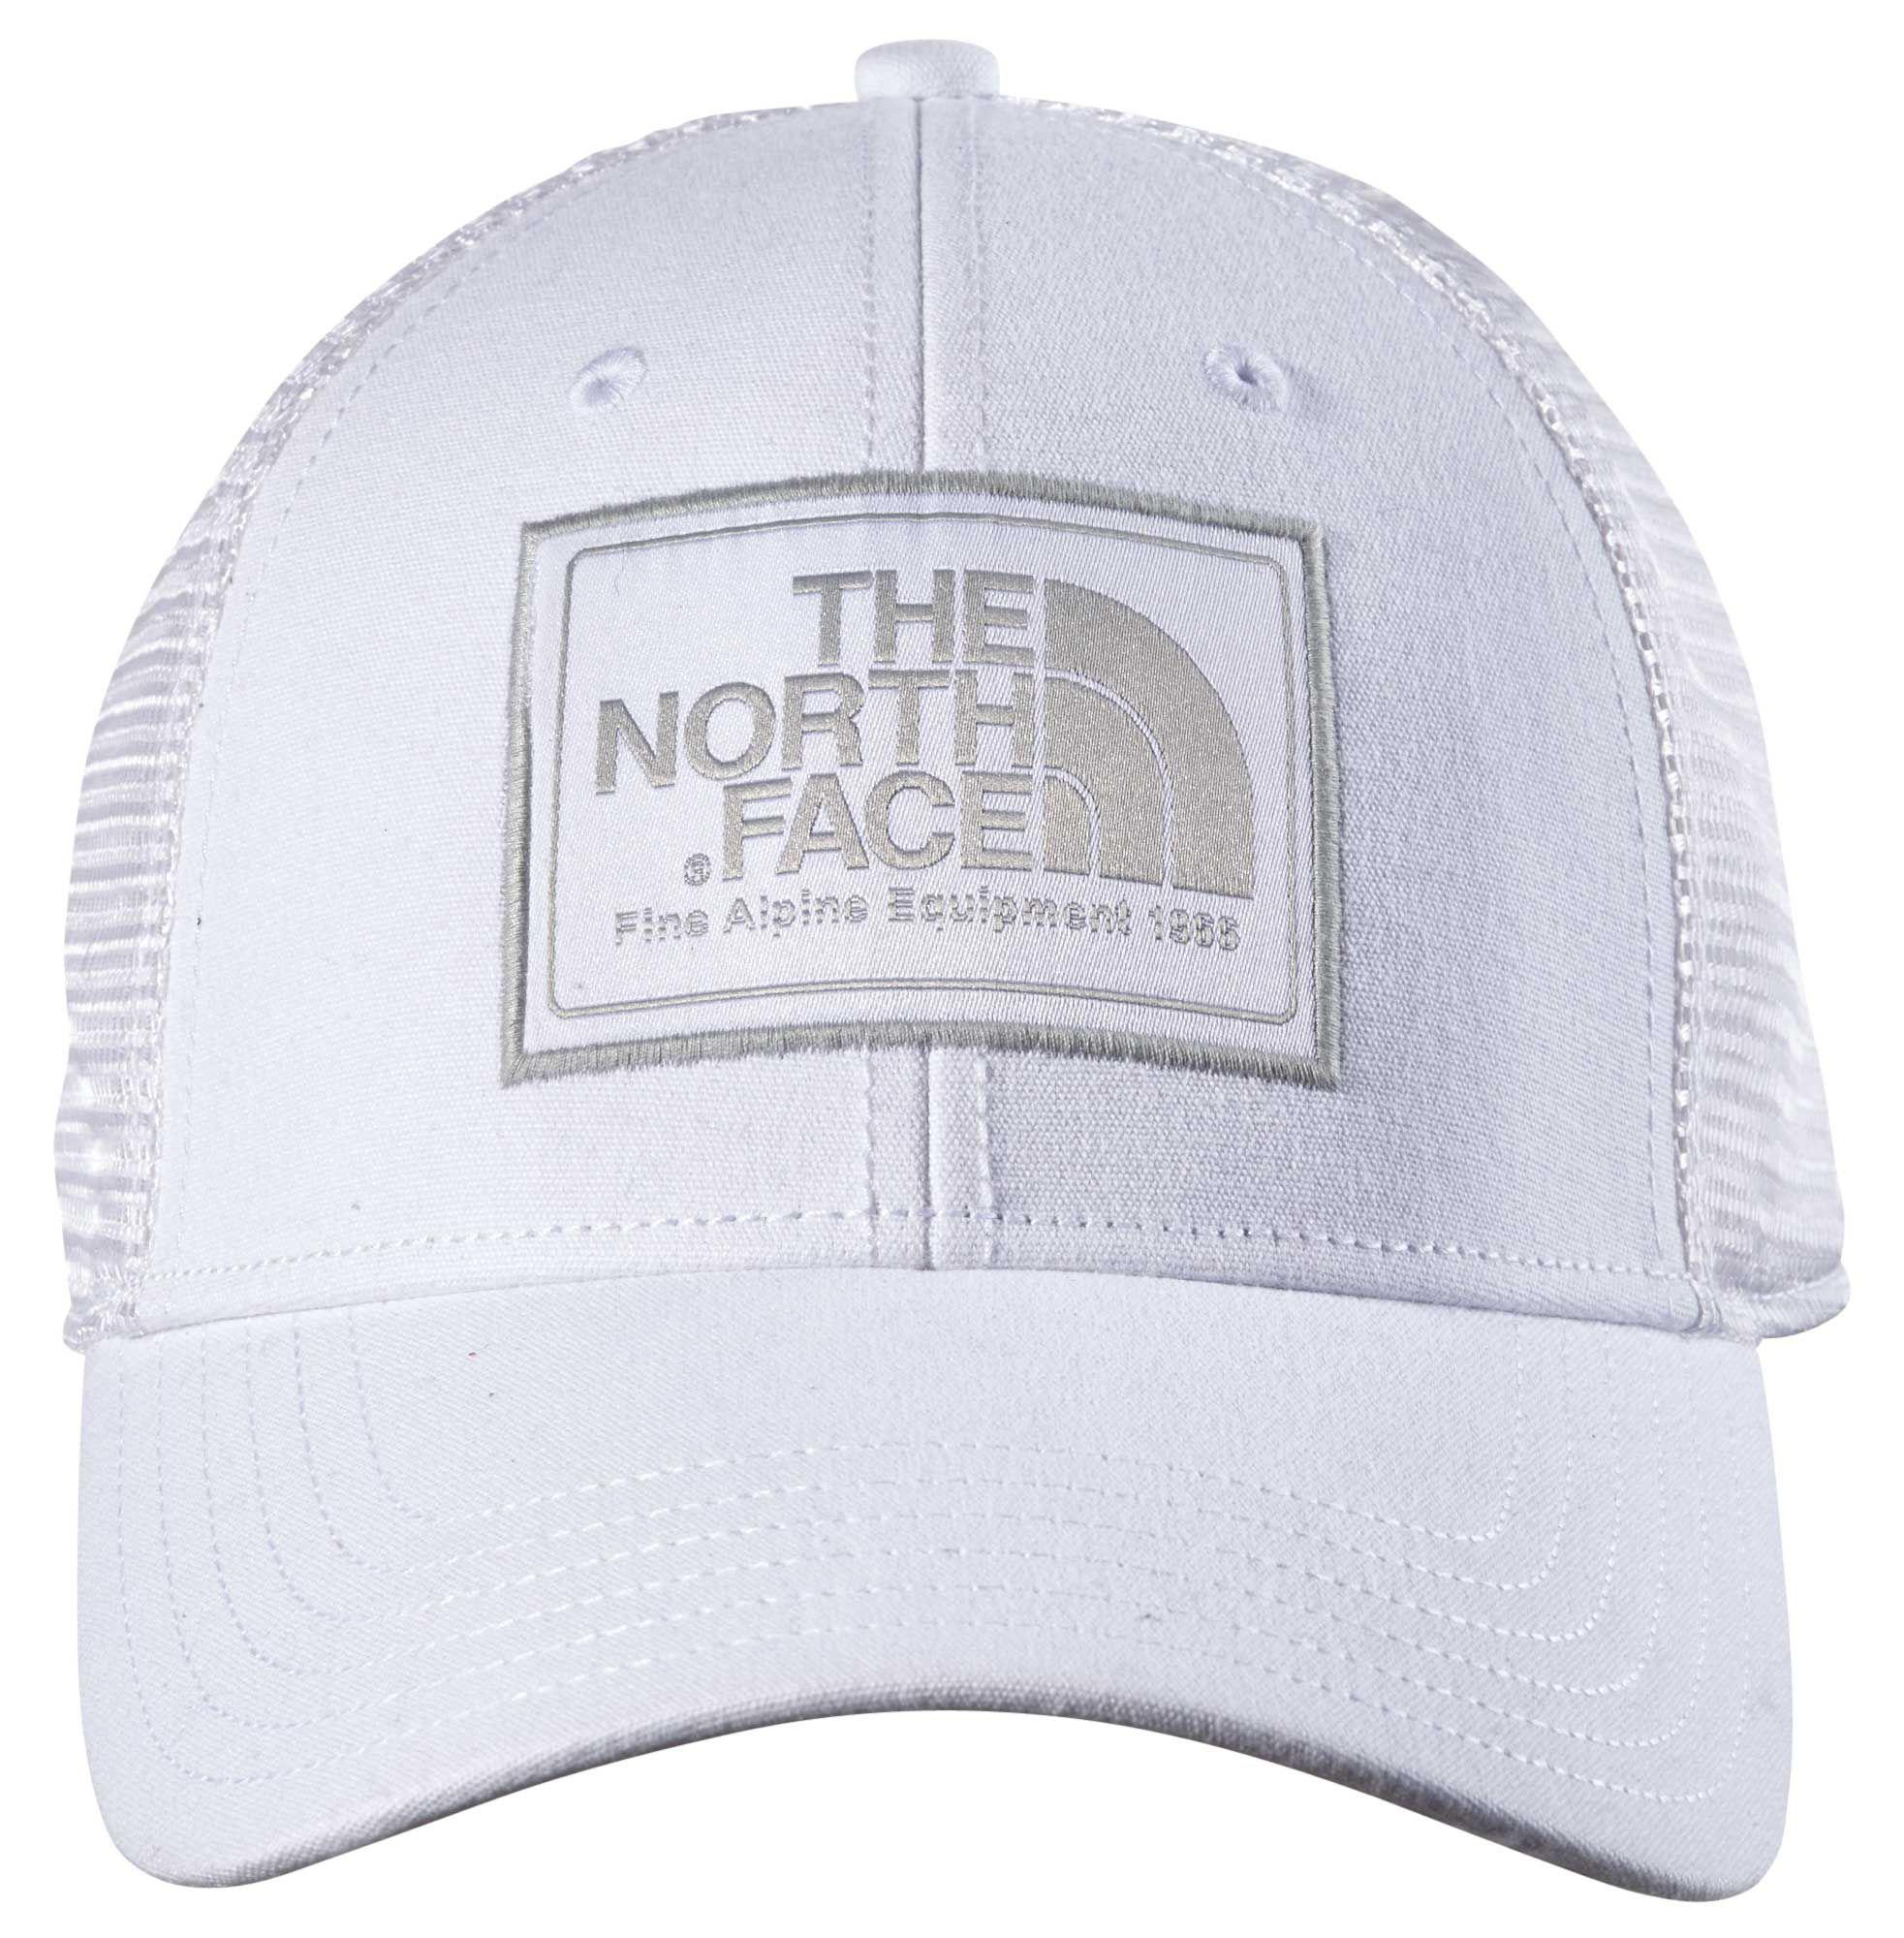 5f21ae59f The North Face White Mudder Trucker Hat for men